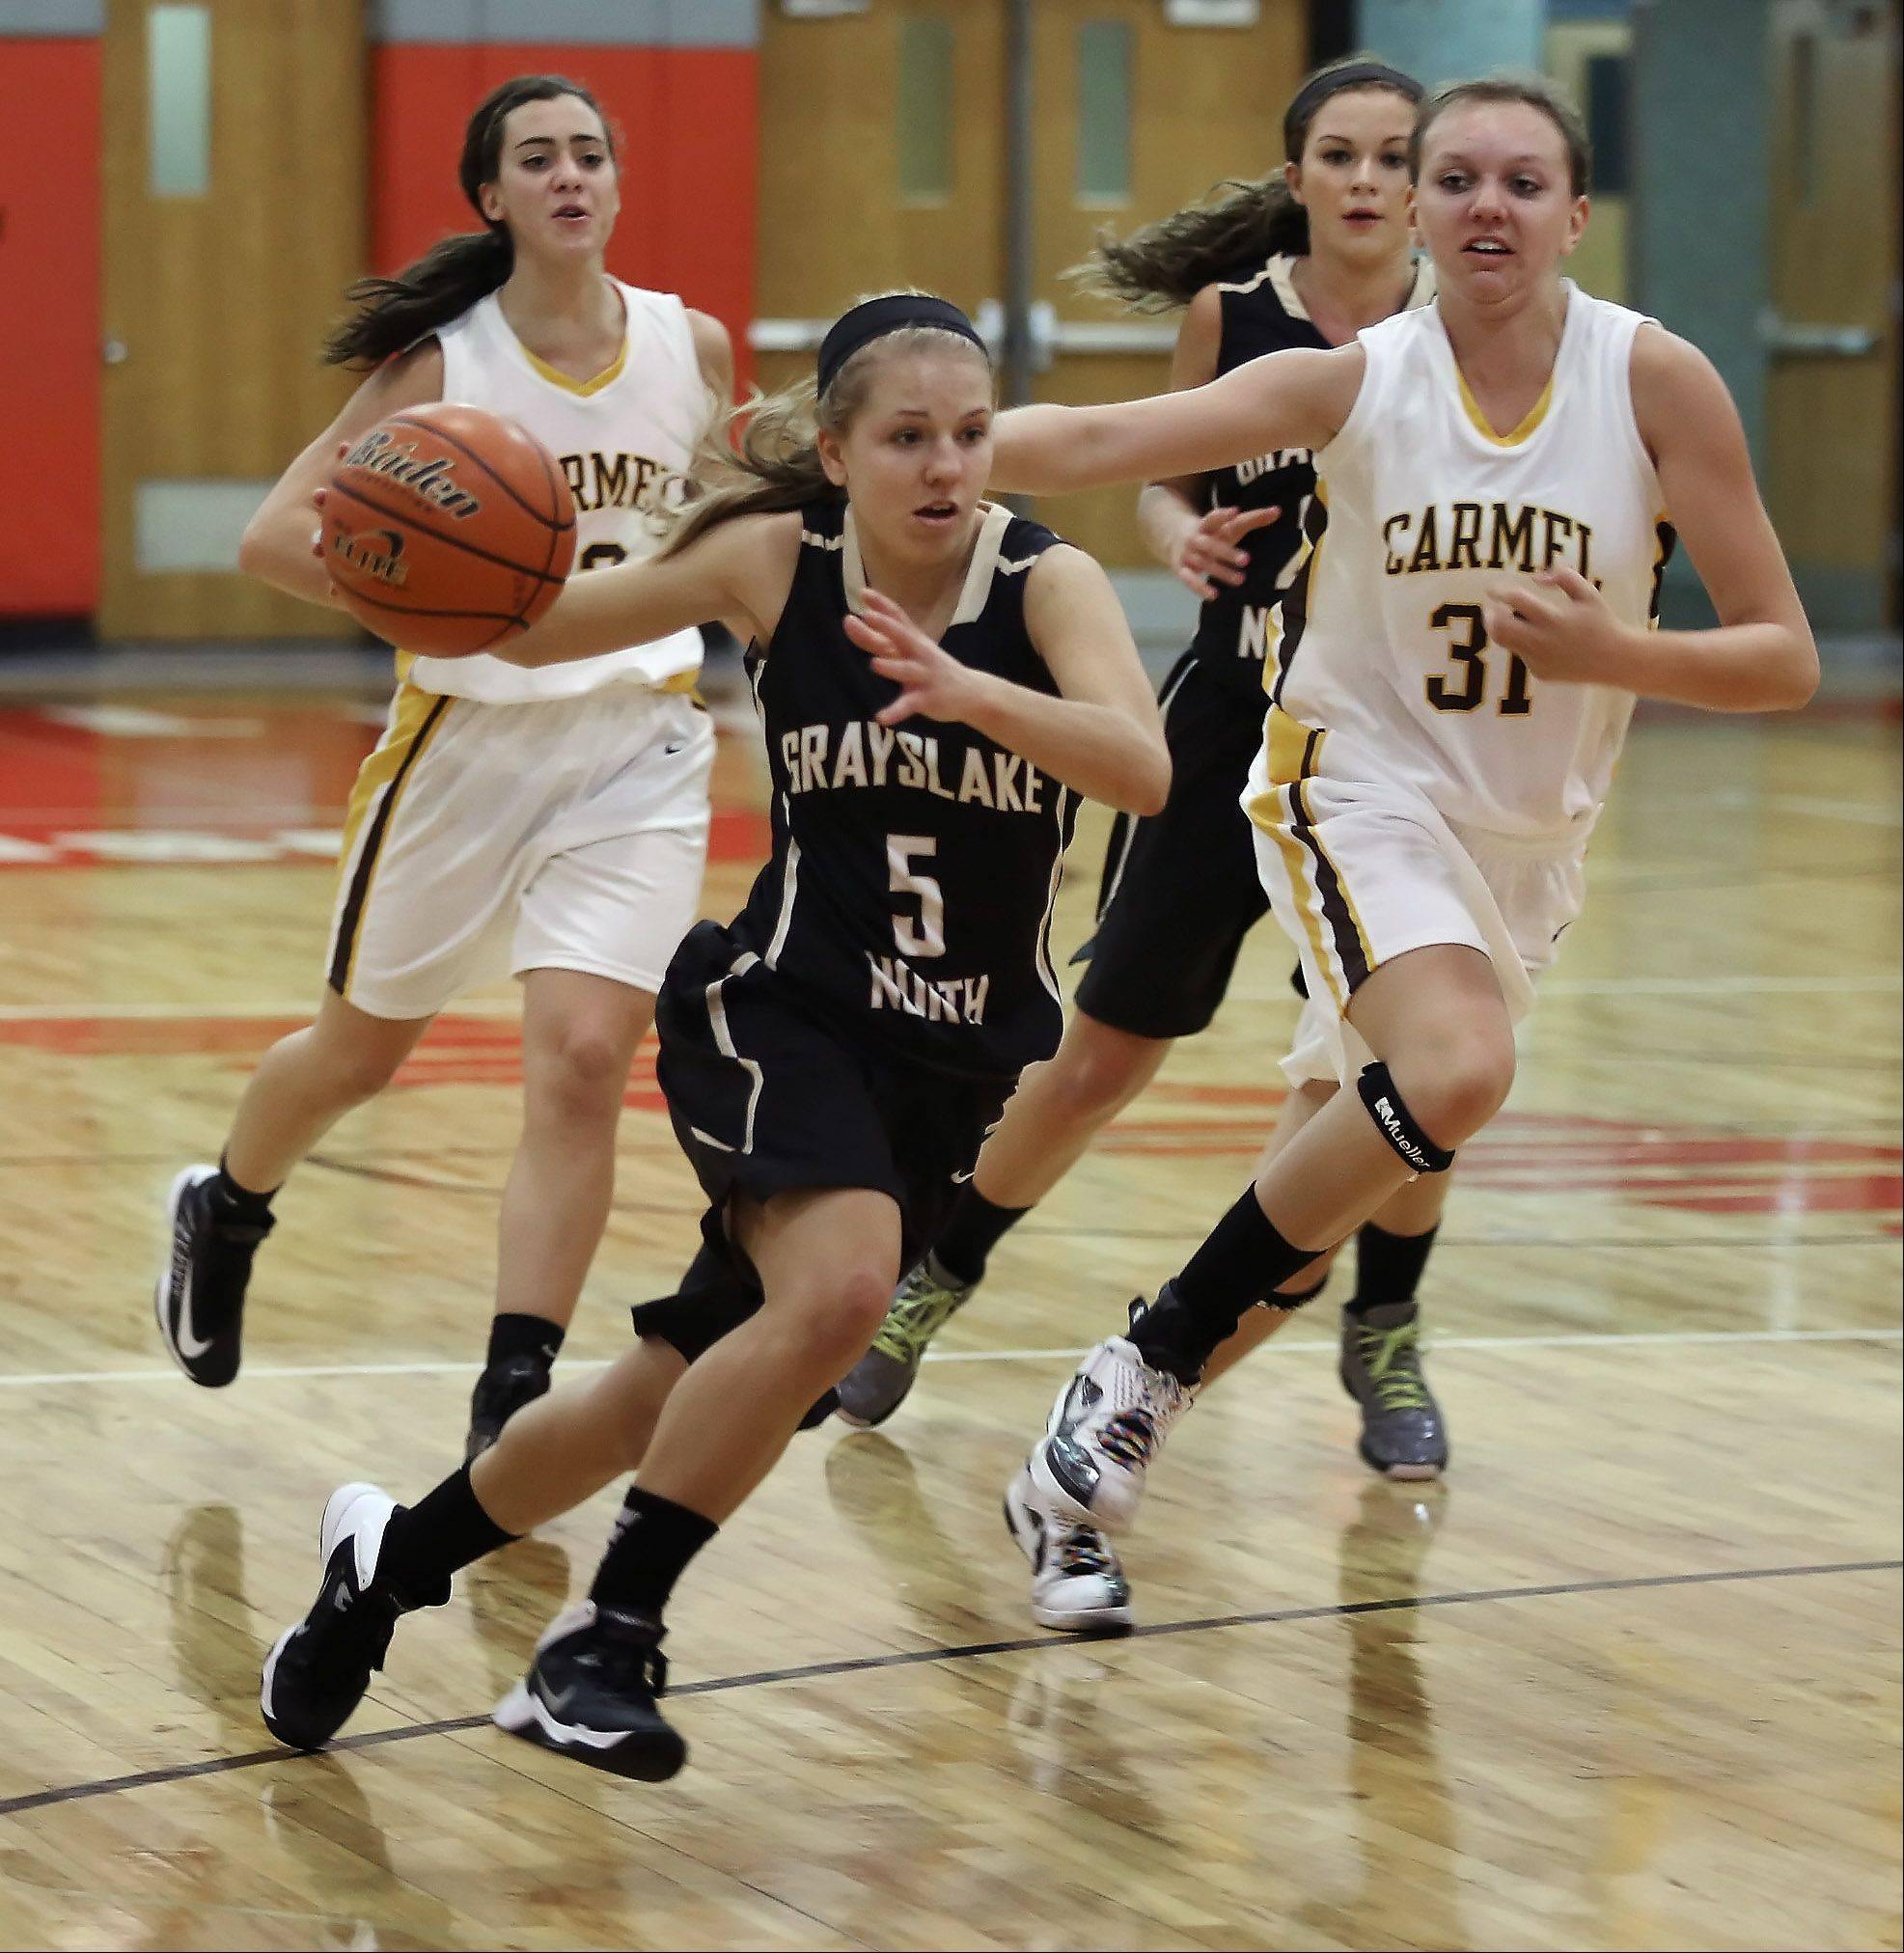 Grayslake North guard Kendall Detweiler races down the court against Carmel before the end of the third quarter Monday at the Mundelein tournament. Carmel players Emily Casale, right, and Kathleen Felicelli are following behind.